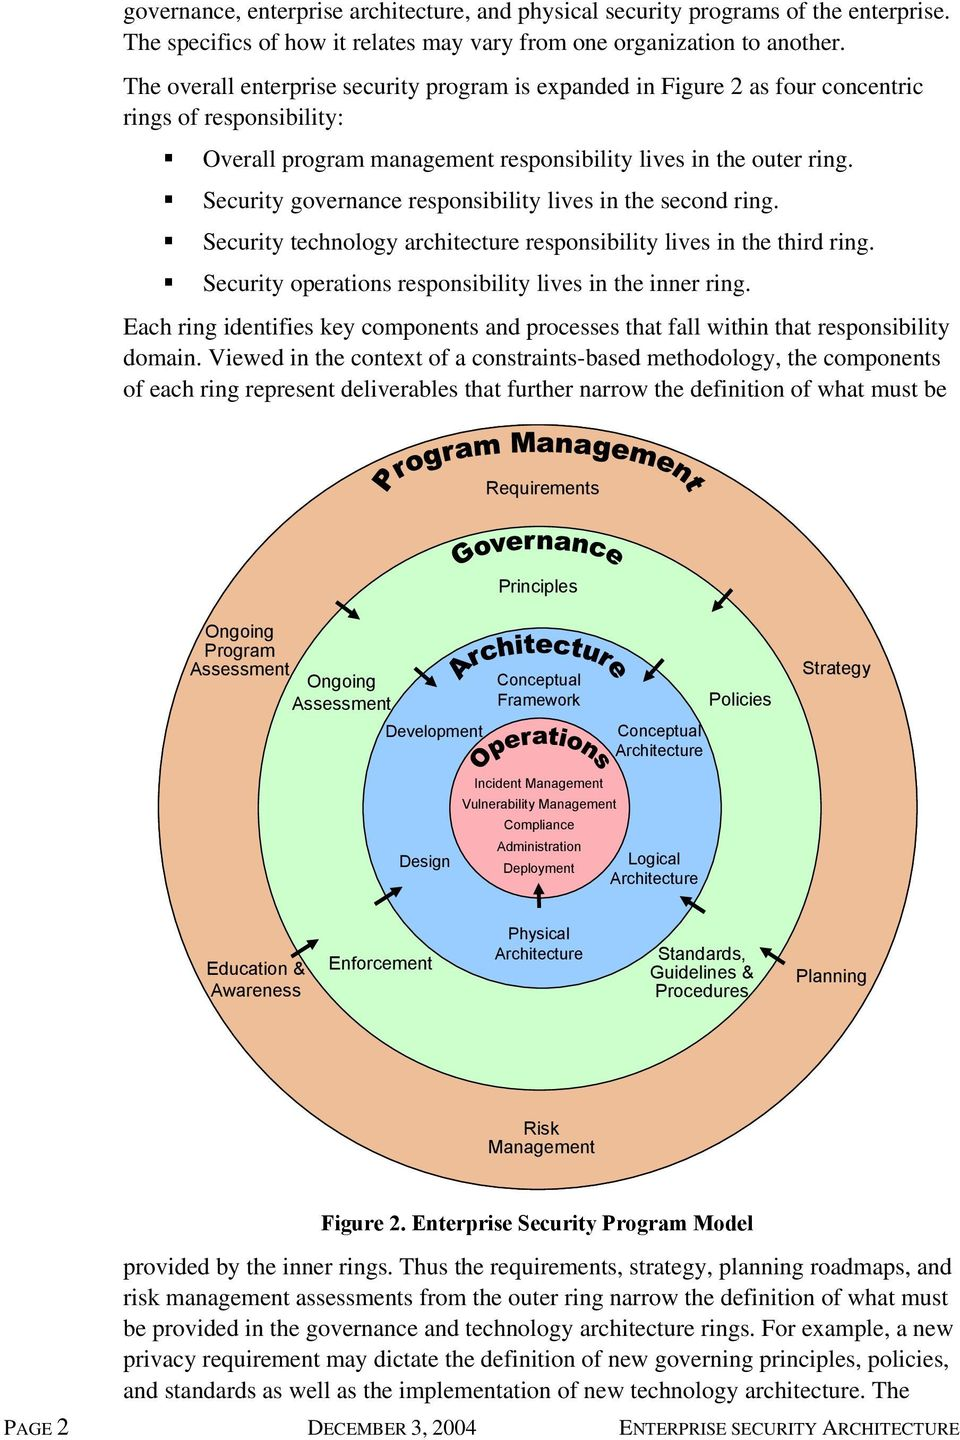 Security governance responsibility lives in the second ring. Security technology architecture responsibility lives in the third ring. Security operations responsibility lives in the inner ring.